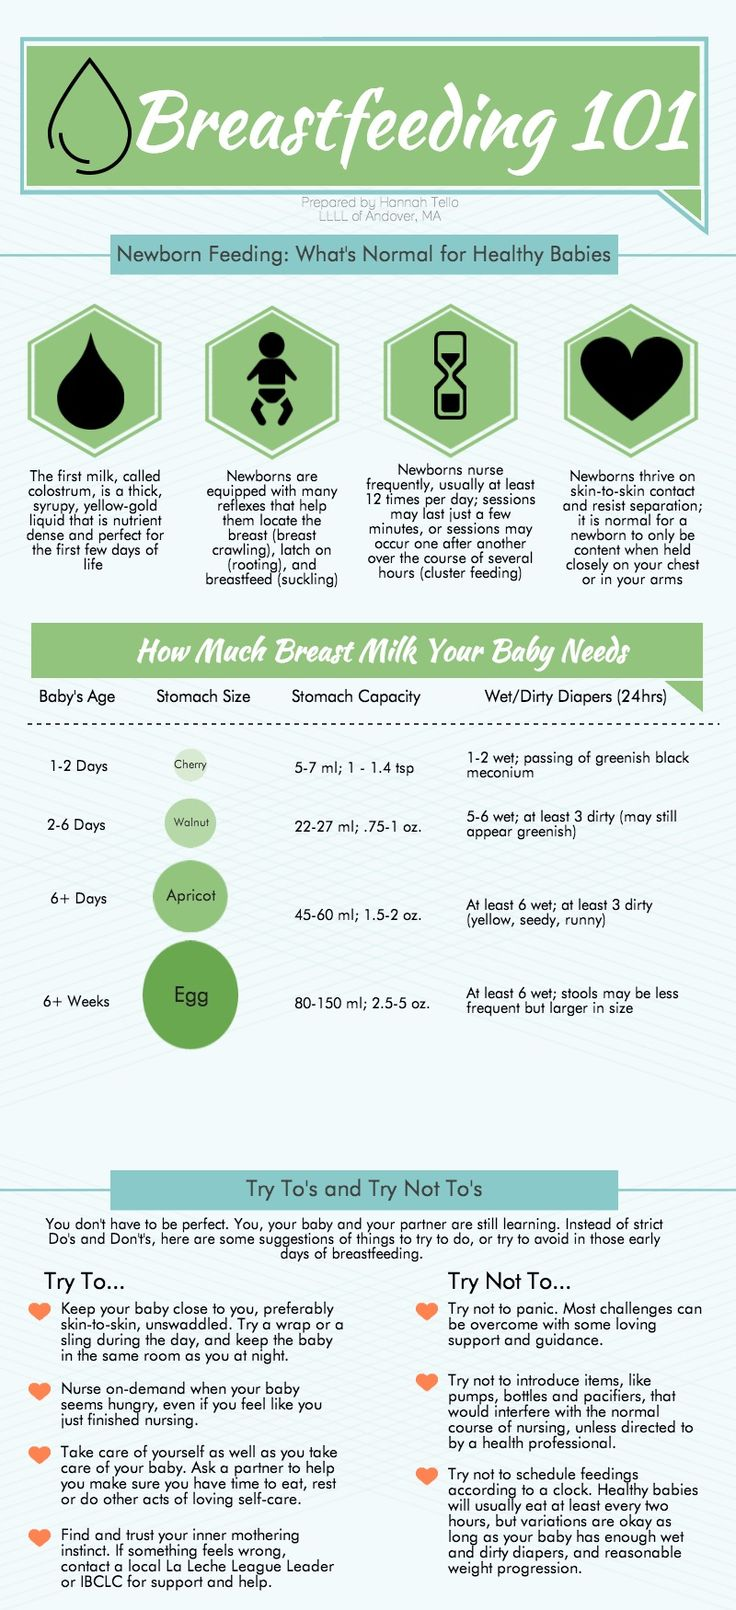 Great info !!! It's World Breastfeeding Week! Let's Celebrate with a Handy Infographic! - Imgur